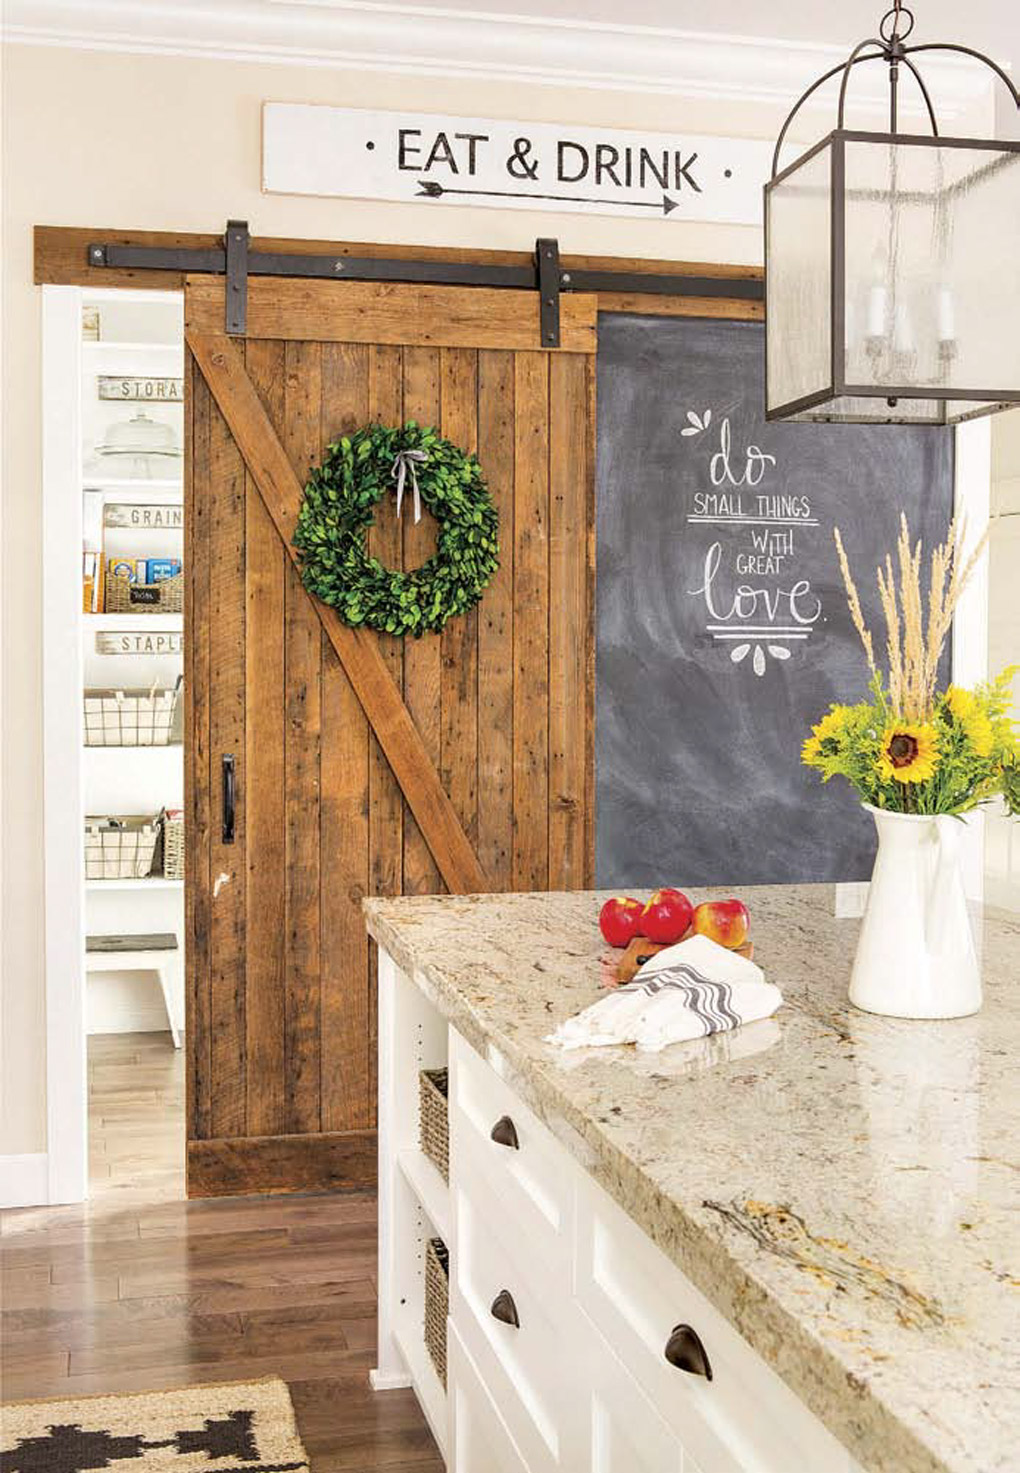 Springfield Barn Home: Delve into the details of farmhouse and cottage style.